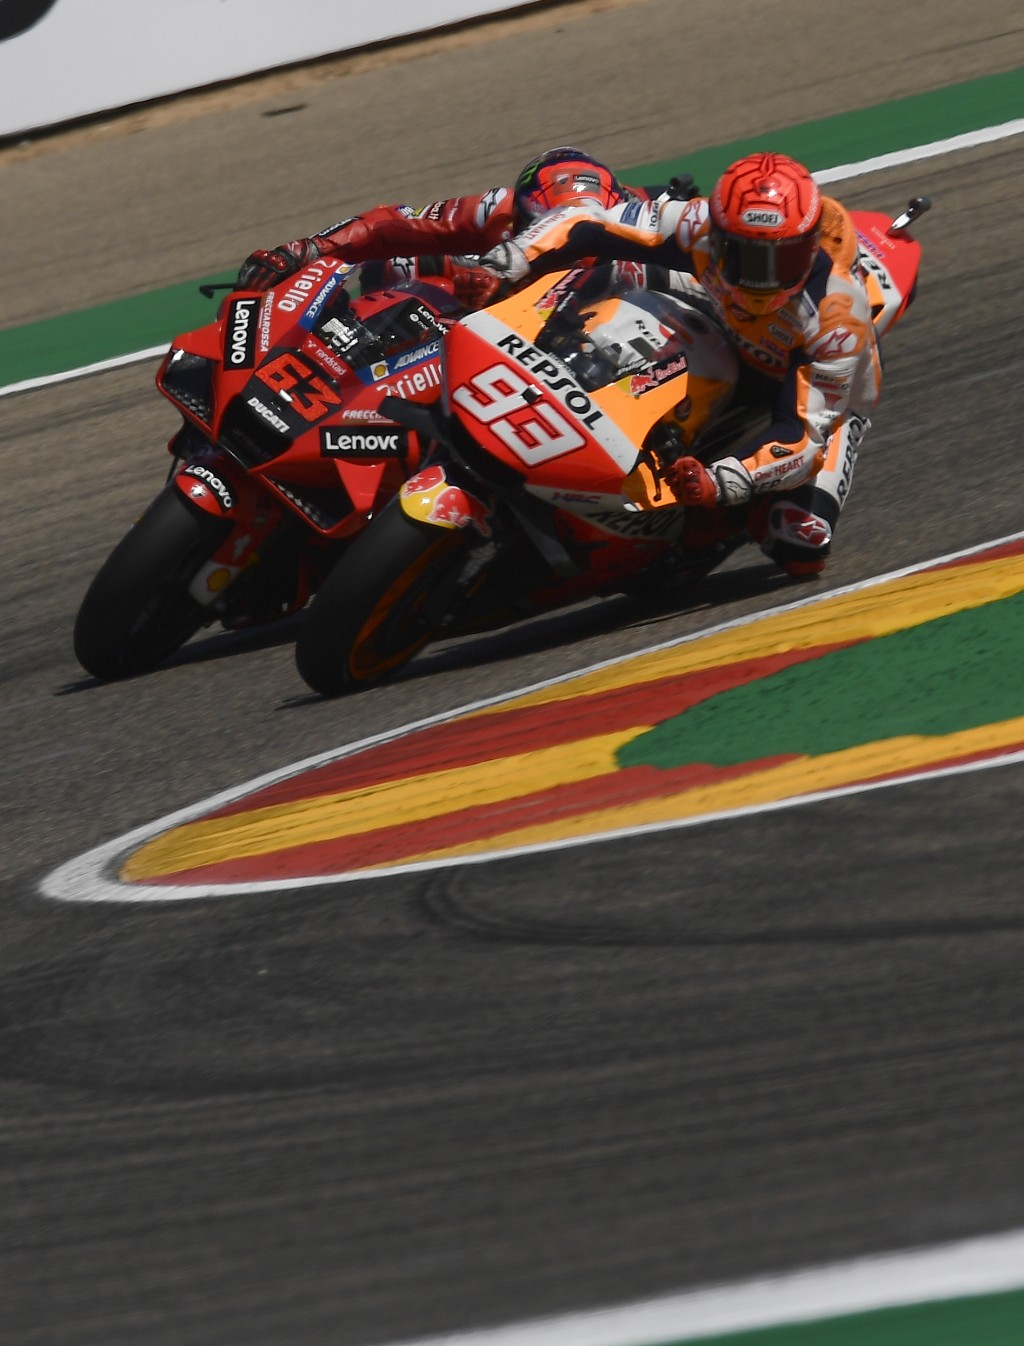 Marc Marquez of Spain, (93), briefly leads Francesco Bagnaia of Italy during the Alcaniz Aragon Moto GP race at the MotorLand Aragon circuit, in Alcan...